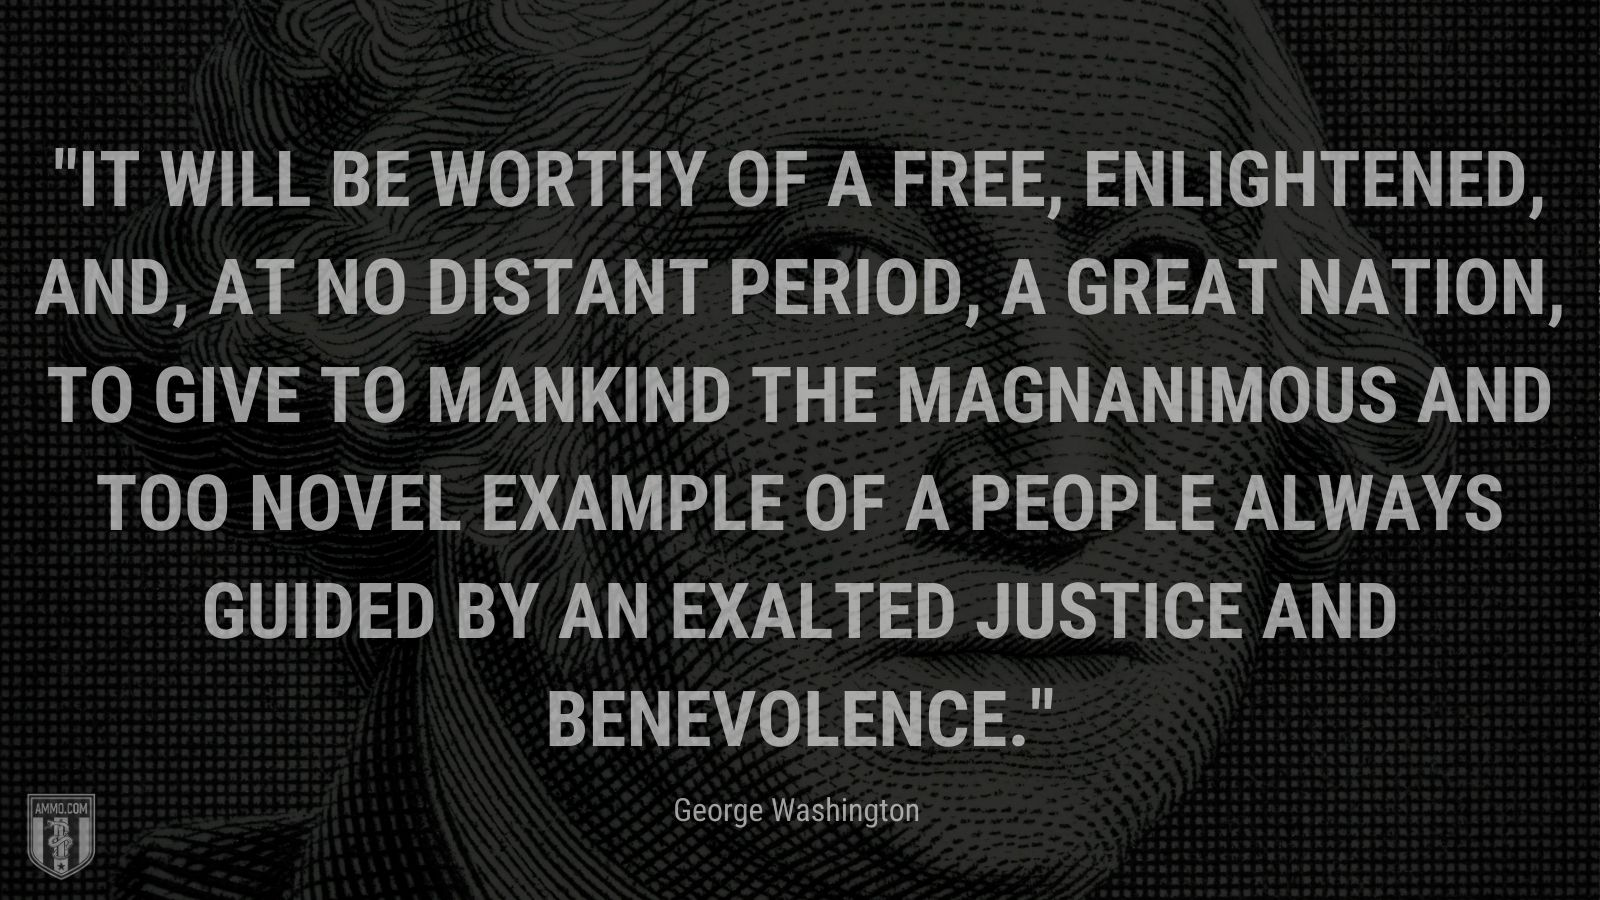 """""""It will be worthy of a free, enlightened, and, at no distant period, a great nation, to give to mankind the magnanimous and too novel example of a People always guided by an exalted justice and benevolence."""" - George Washington"""